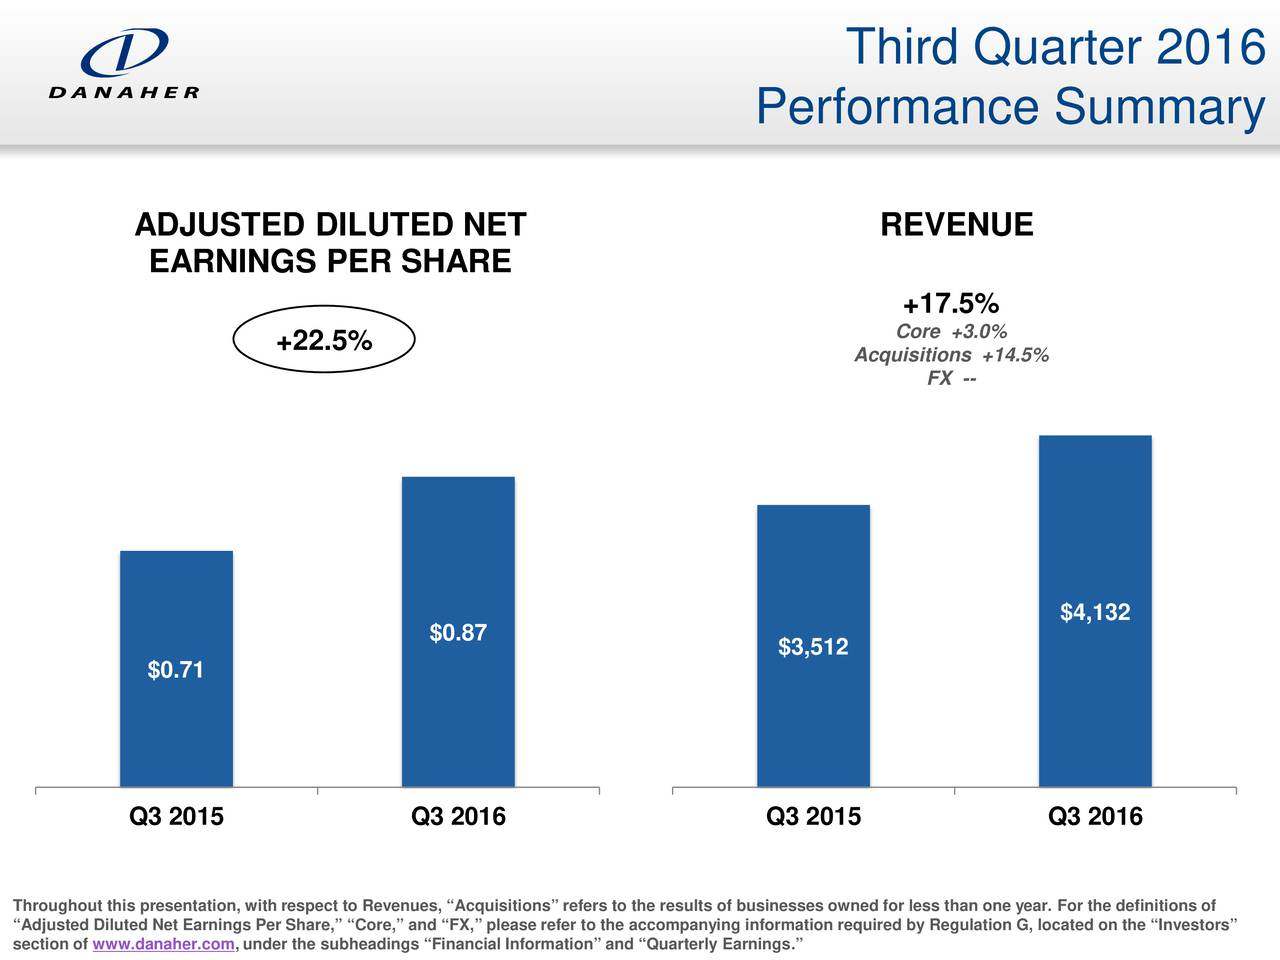 Performance Summary ADJUSTED DILUTED NET REVENUE EARNINGS PER SHARE +17.5% +22.5% Core +3.0% Acquisitions +14.5% FX -- $4,132 $0.87 $3,512 $0.71 Q3 2015 Q3 2016 Q3 2015 Q3 2016 Throughout this presentation, with respect to Revenues, Acquisitions refers to the results of businesses owned for less than one year. For the definitions of Adjusted Diluted Net Earnings Per Share, Core, and FX, please refer to the accompanying information required by Regulation G, located on the Investors